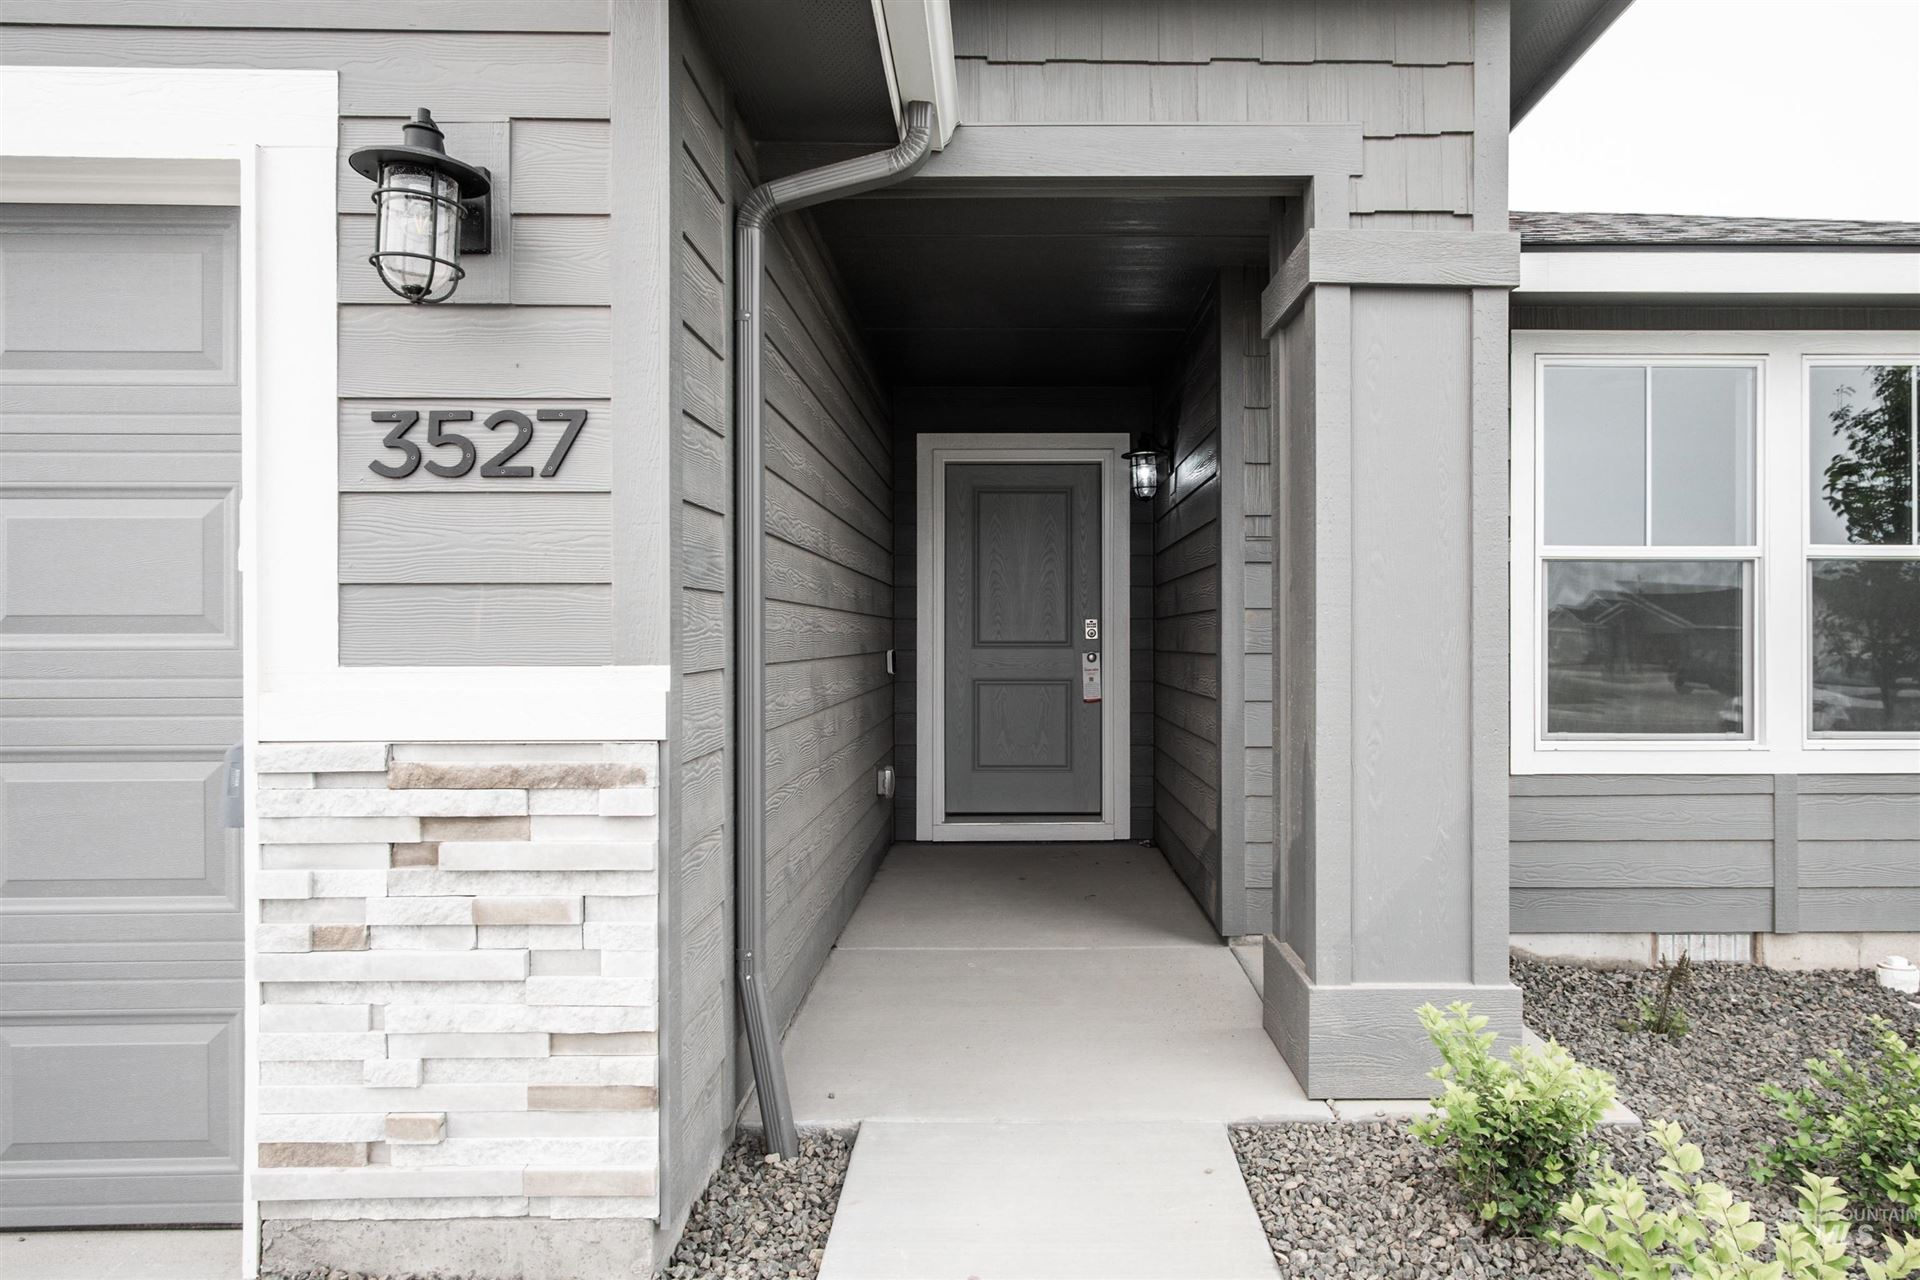 Photo of 3527 W Remembrance Dr, Meridian, ID 83642 (MLS # 98811633)